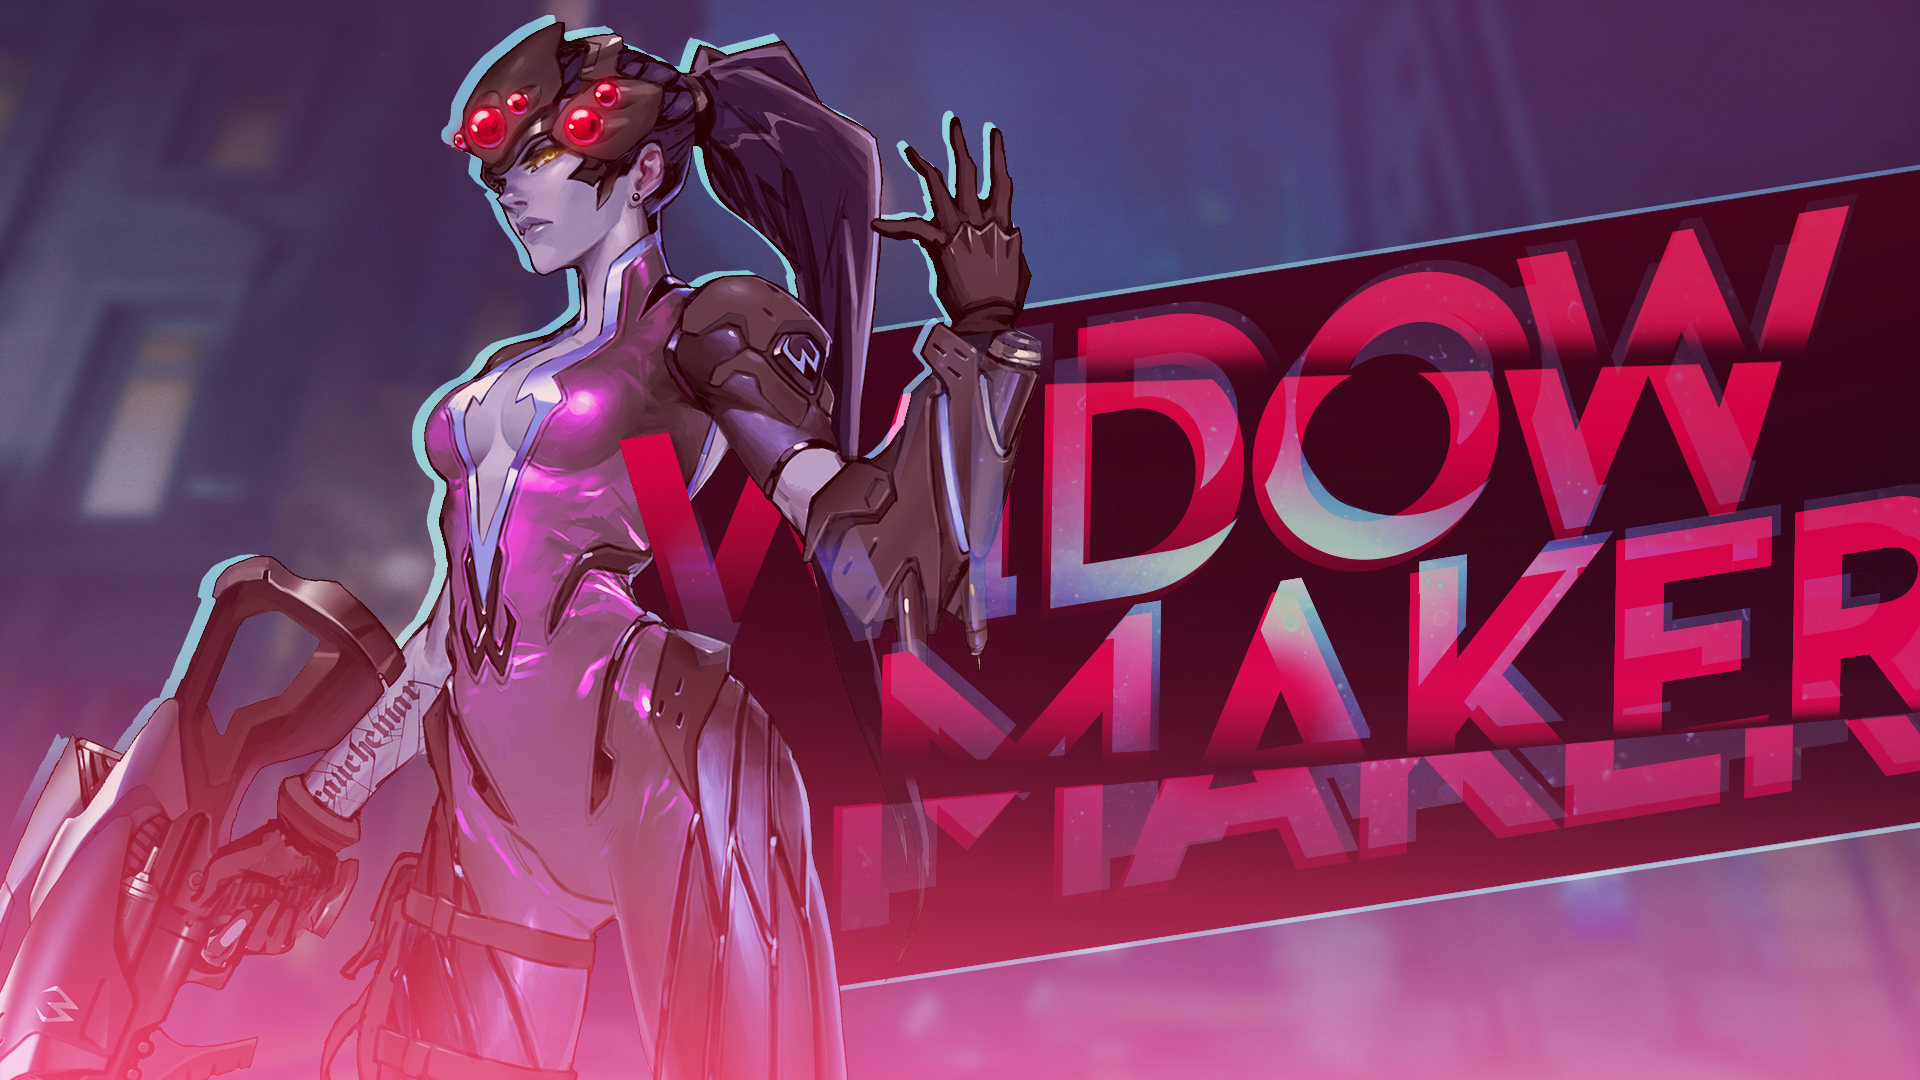 widowmaker overwatch wallpaper 1920x1080 - photo #8